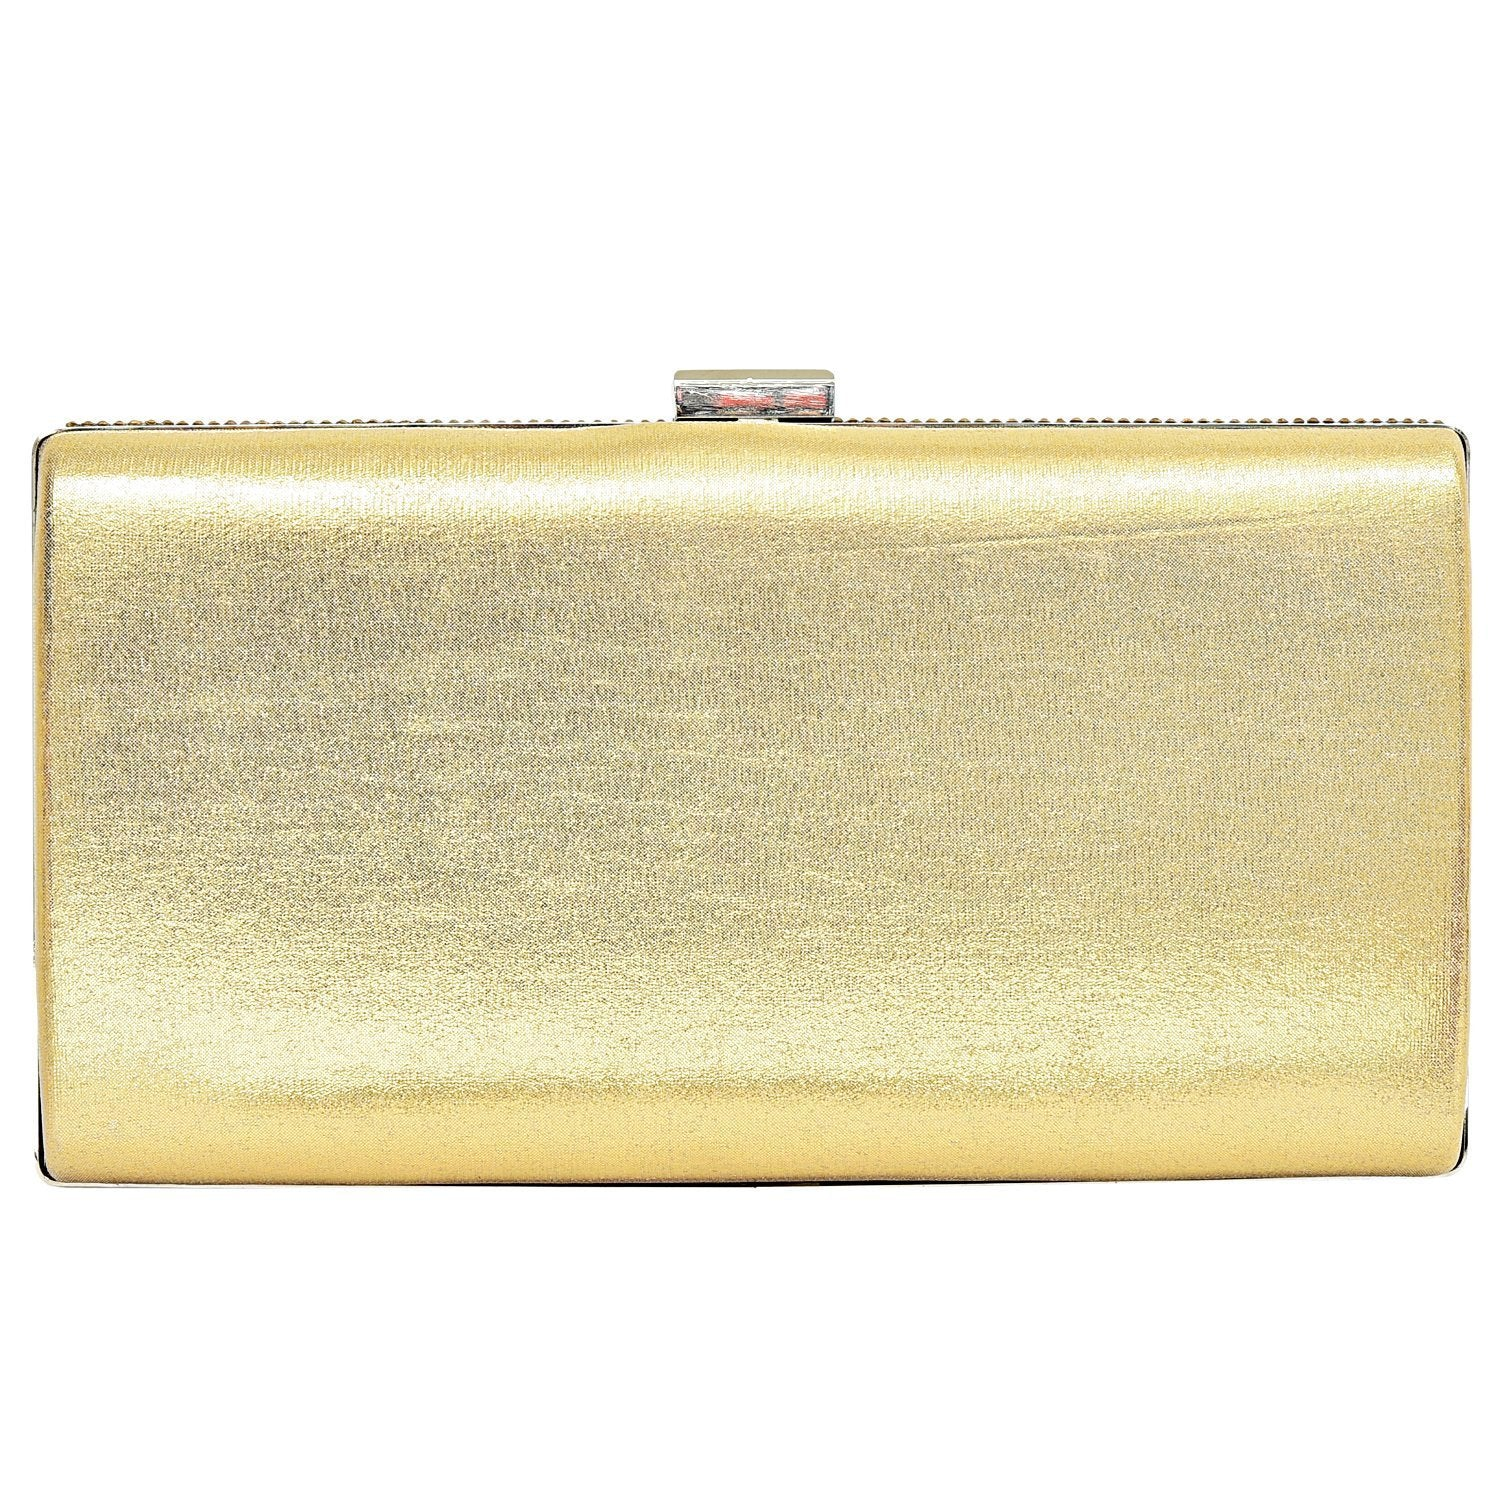 Big Box Golden Party wear Clutches - Bagaholics Gift